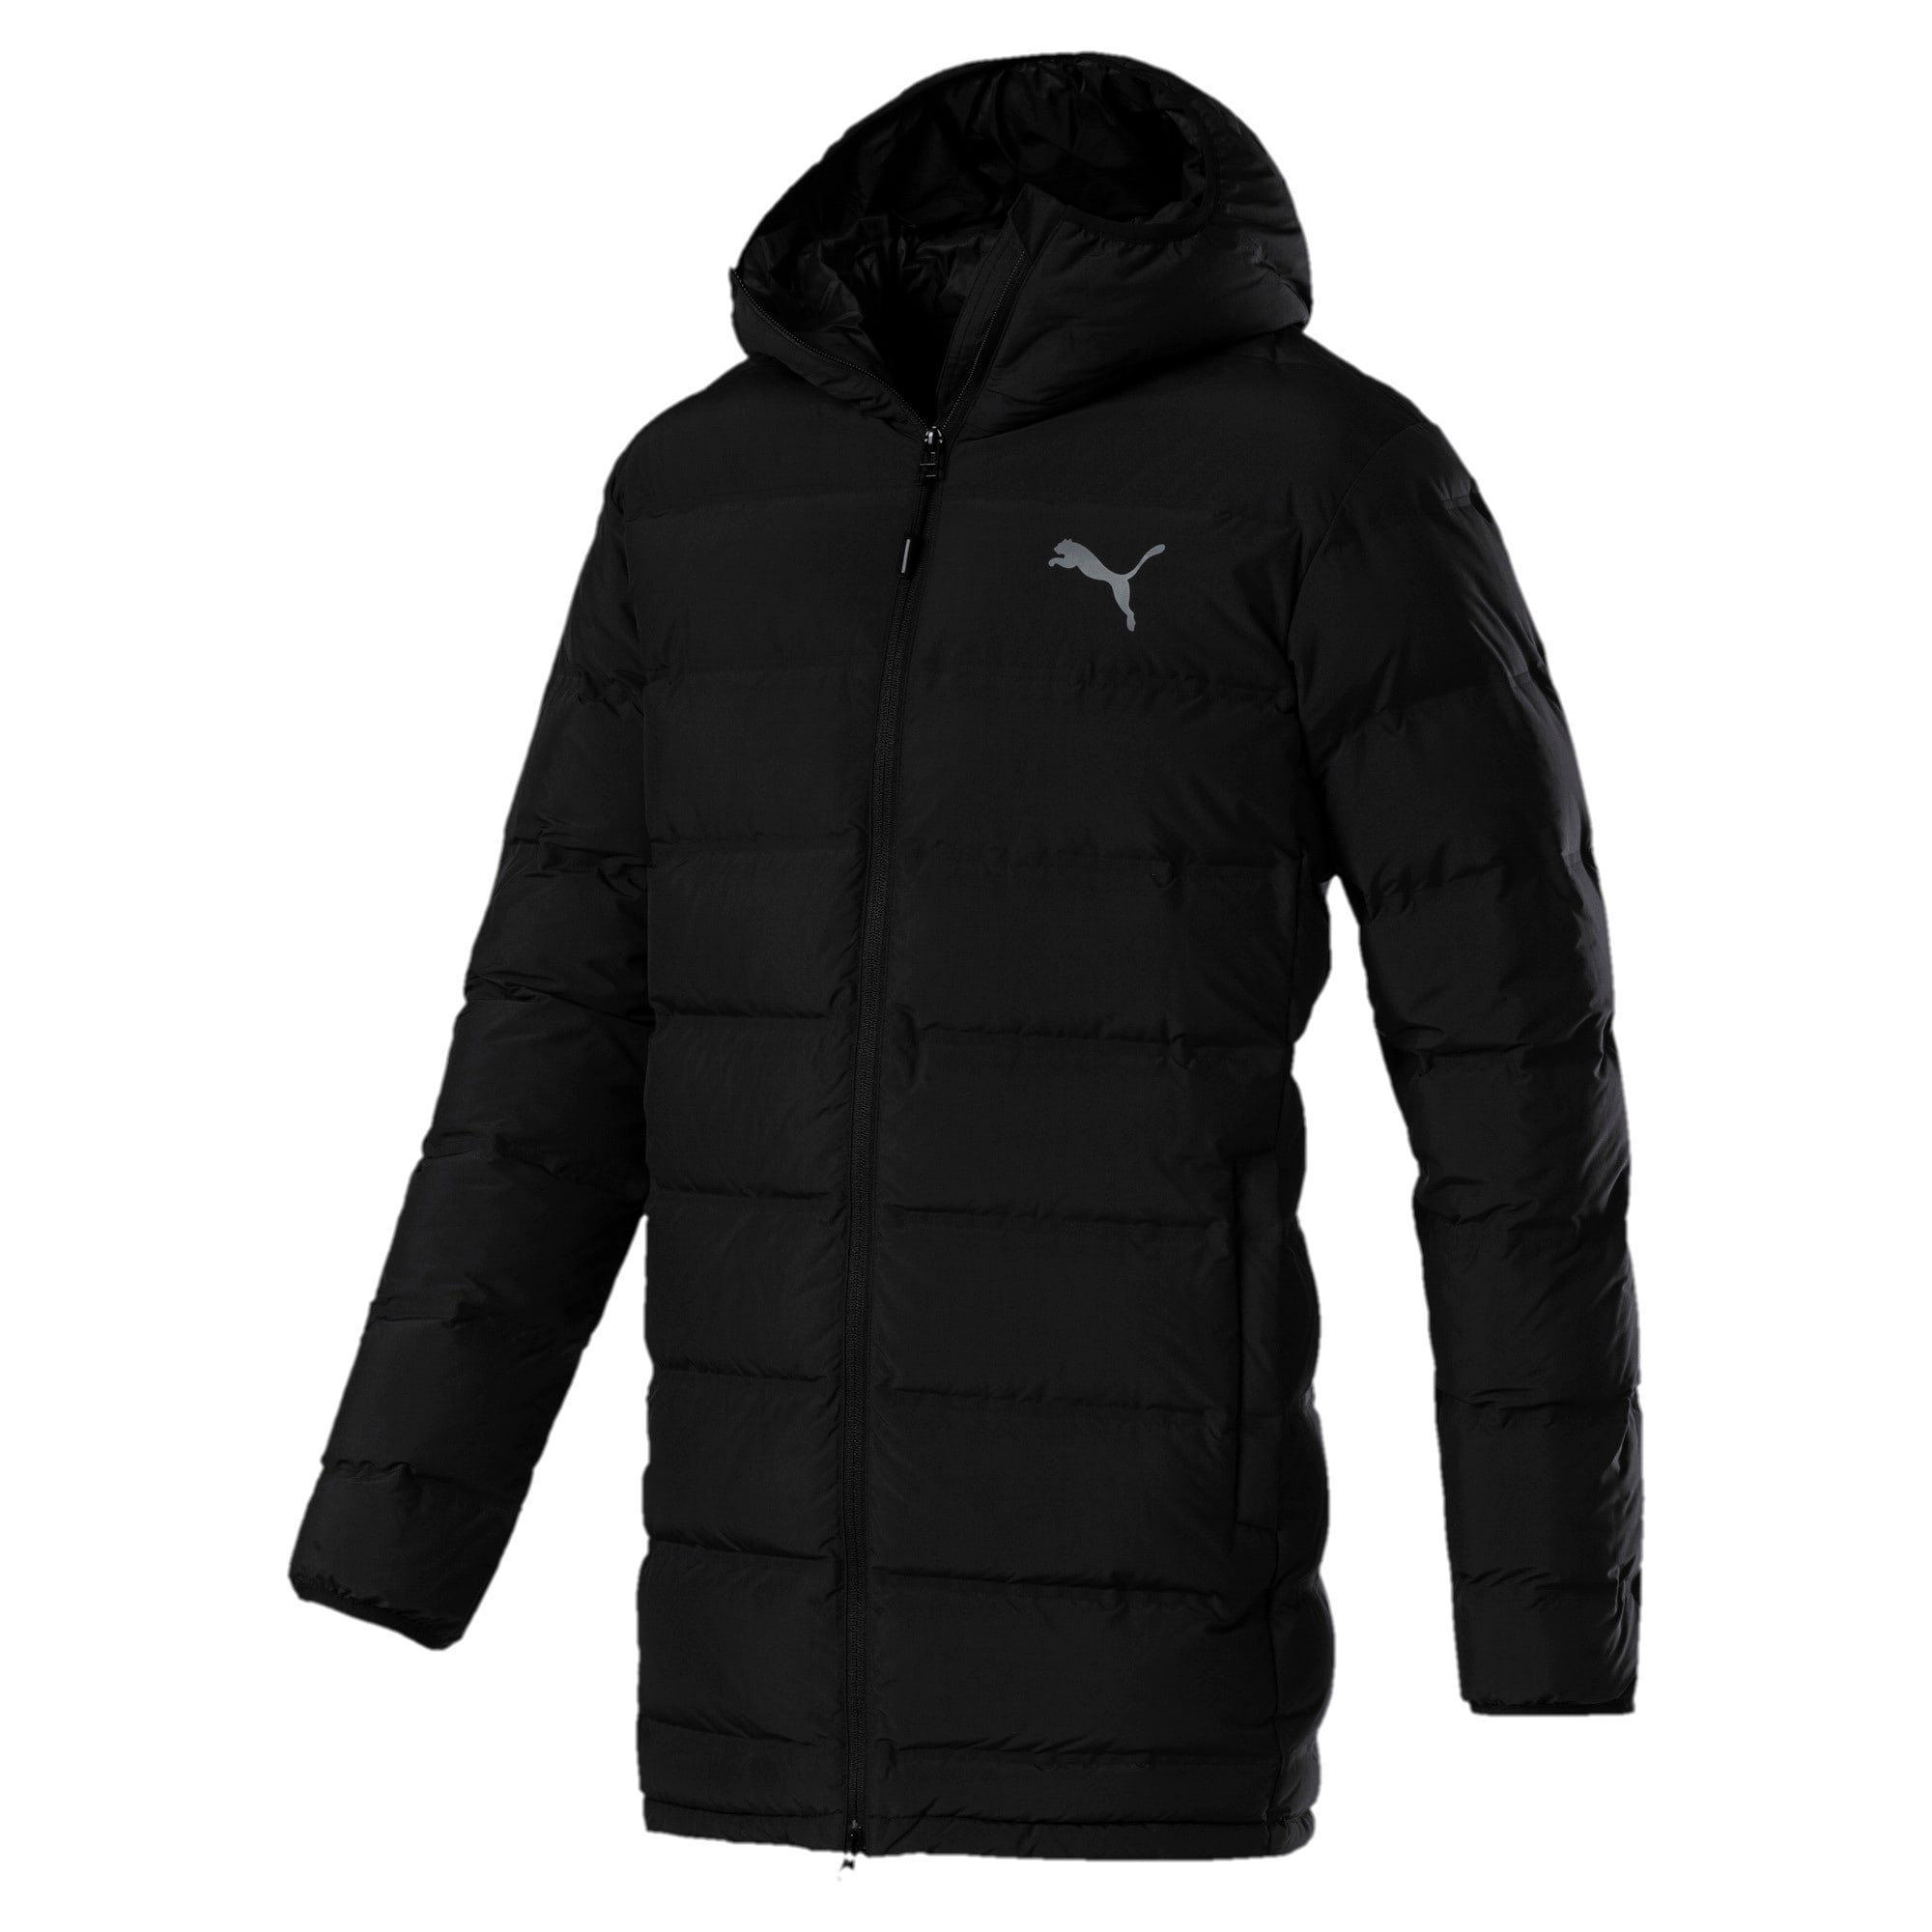 Thumbnail 4 of Herren Downguard 600 Daunenjacke, Puma Black, medium